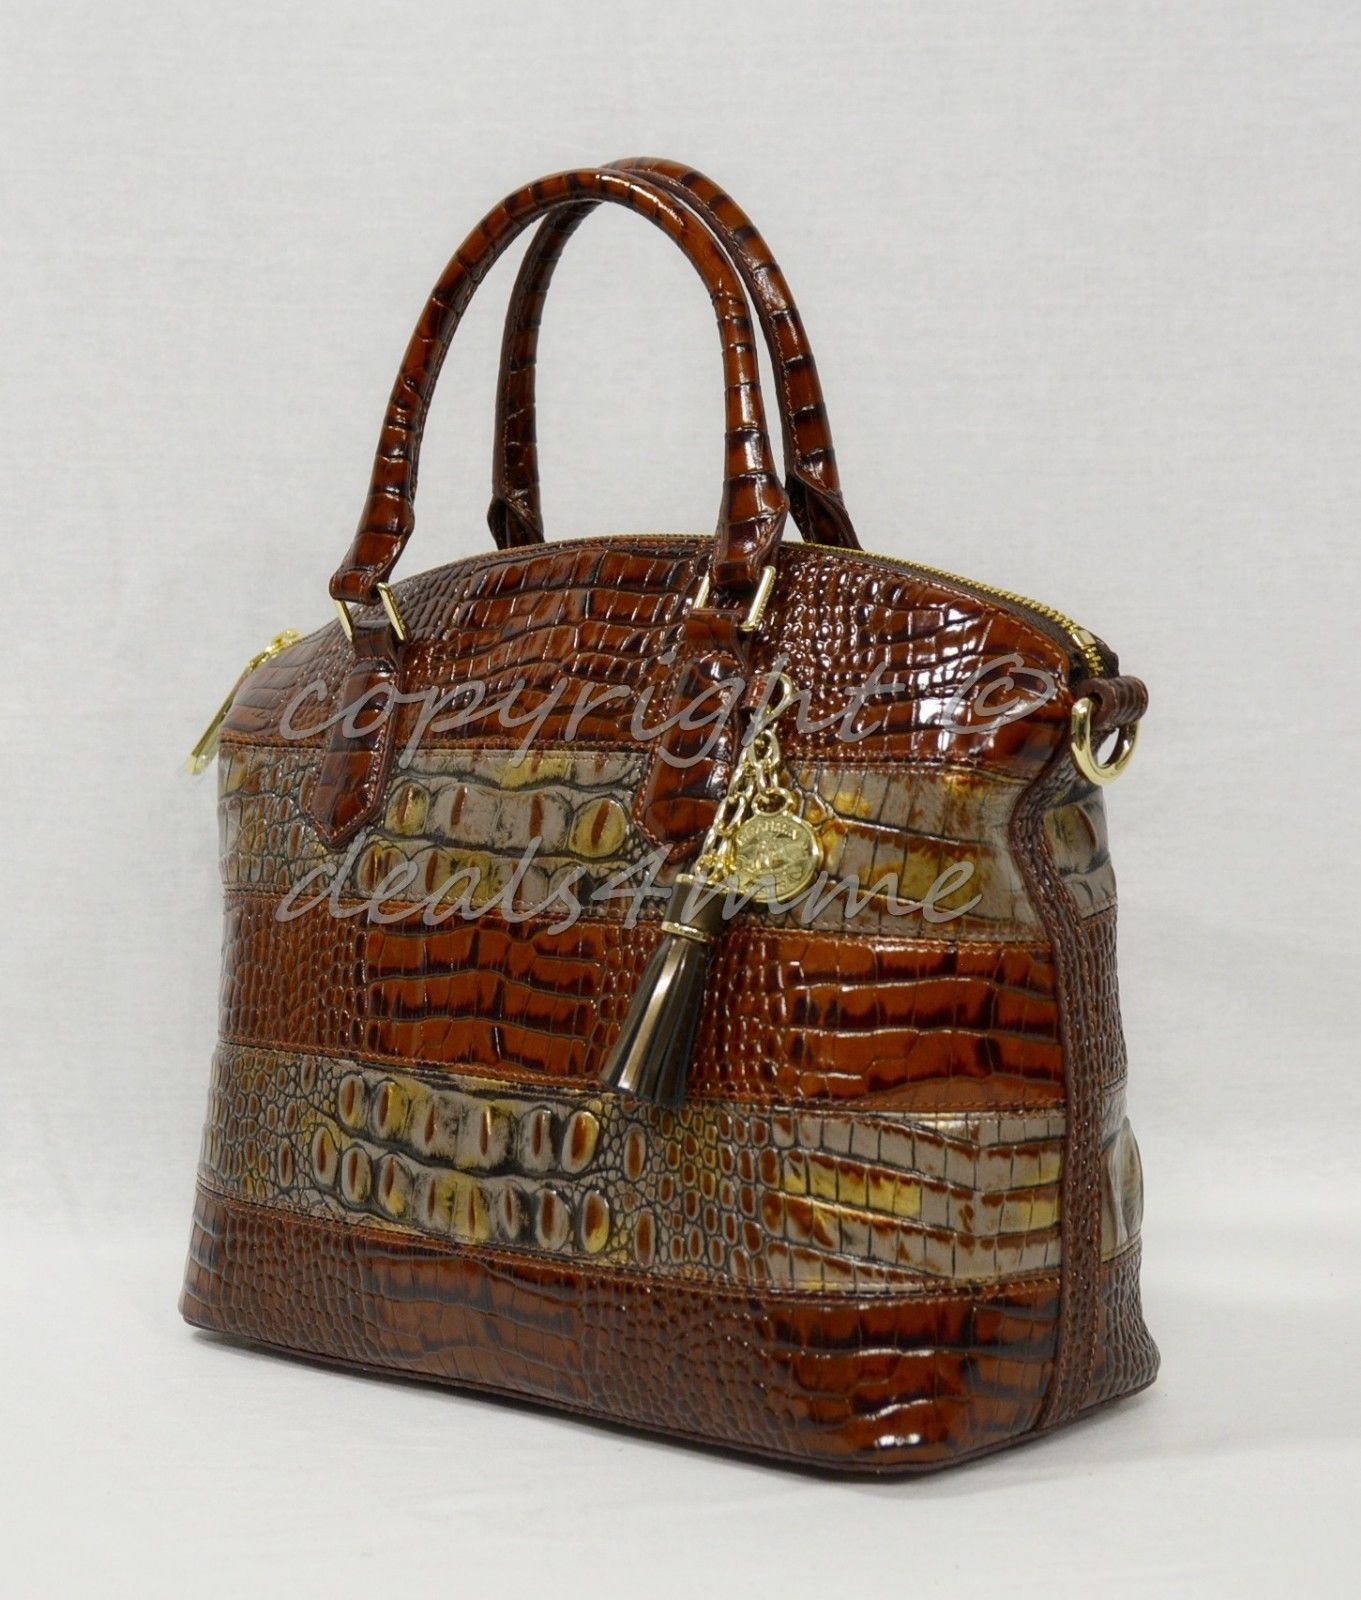 239.00$  Watch now - http://vilfk.justgood.pw/vig/item.php?t=bvz7p531288 - NWT! Brahmin Duxbury Satchel/Shoulder Bag in Fall Tortoise Durham 239.00$